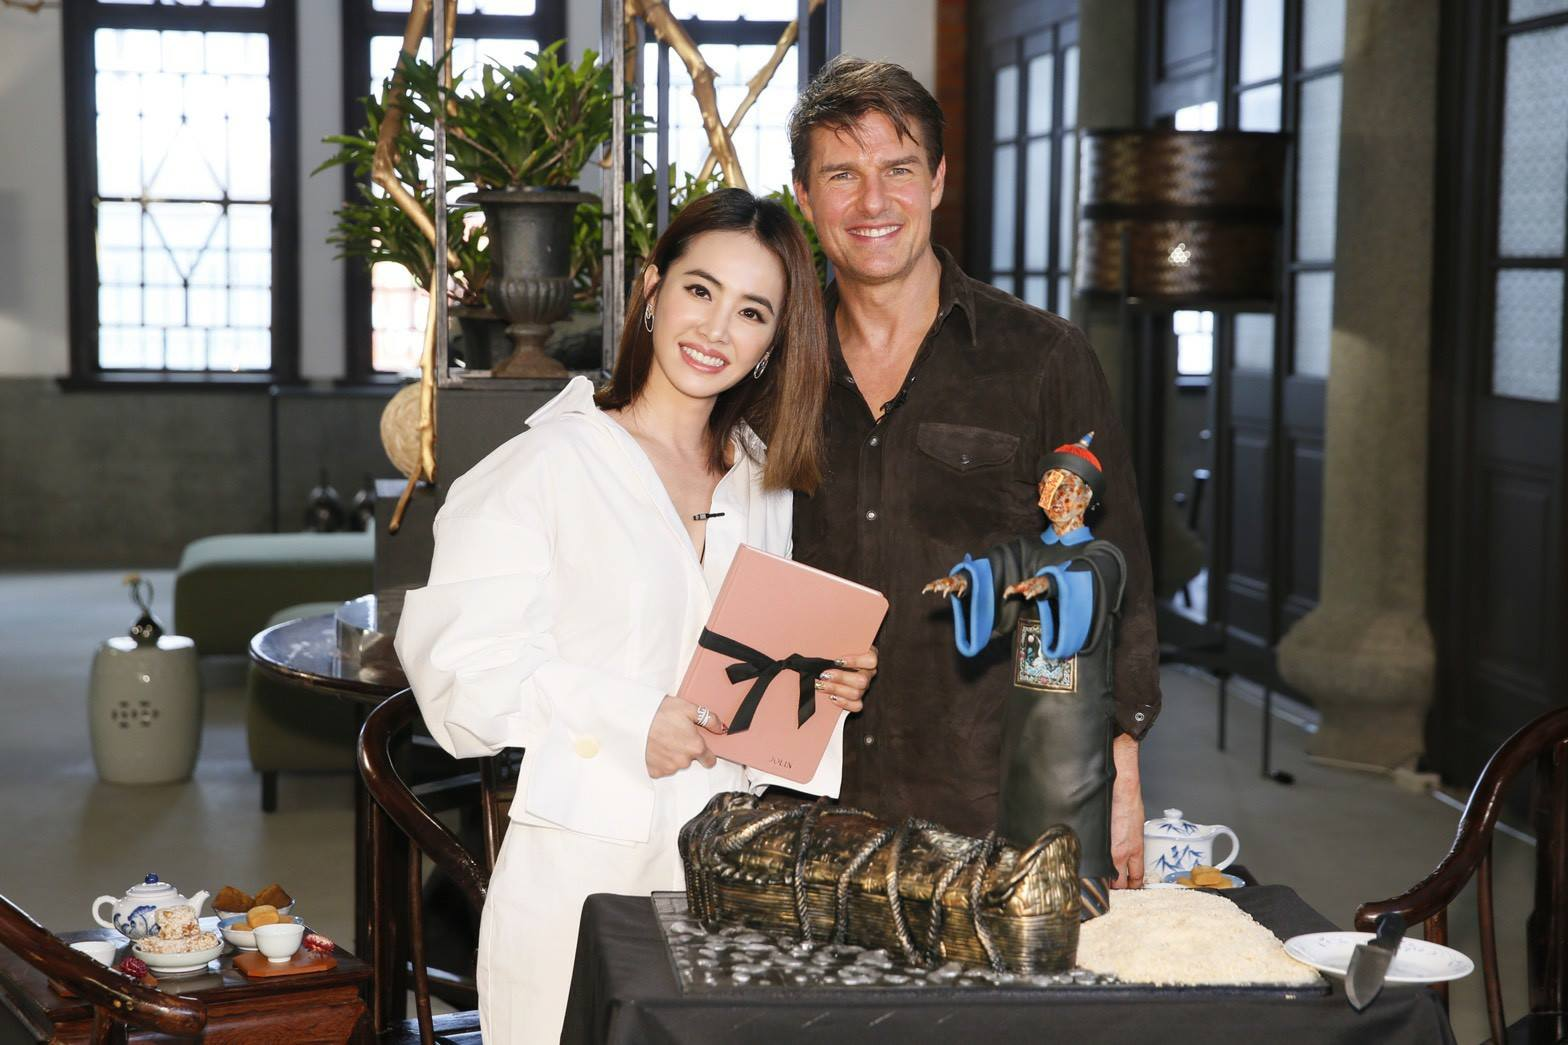 Tom Cruise with Jolin Tsai and her cakes (photo from Jolin's Facebook).